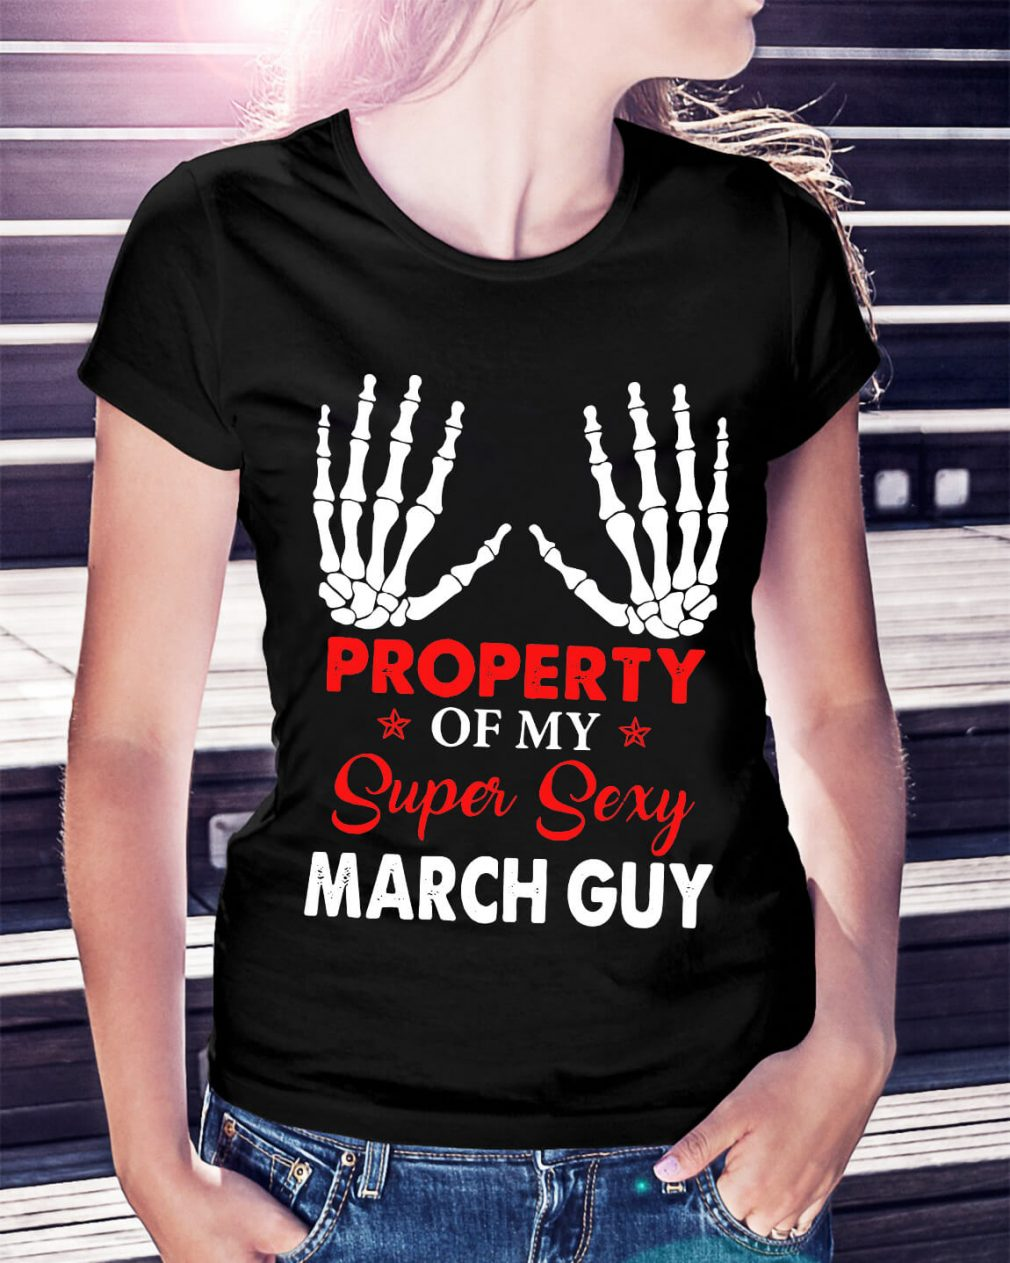 Property of my super sexy March guy shirt